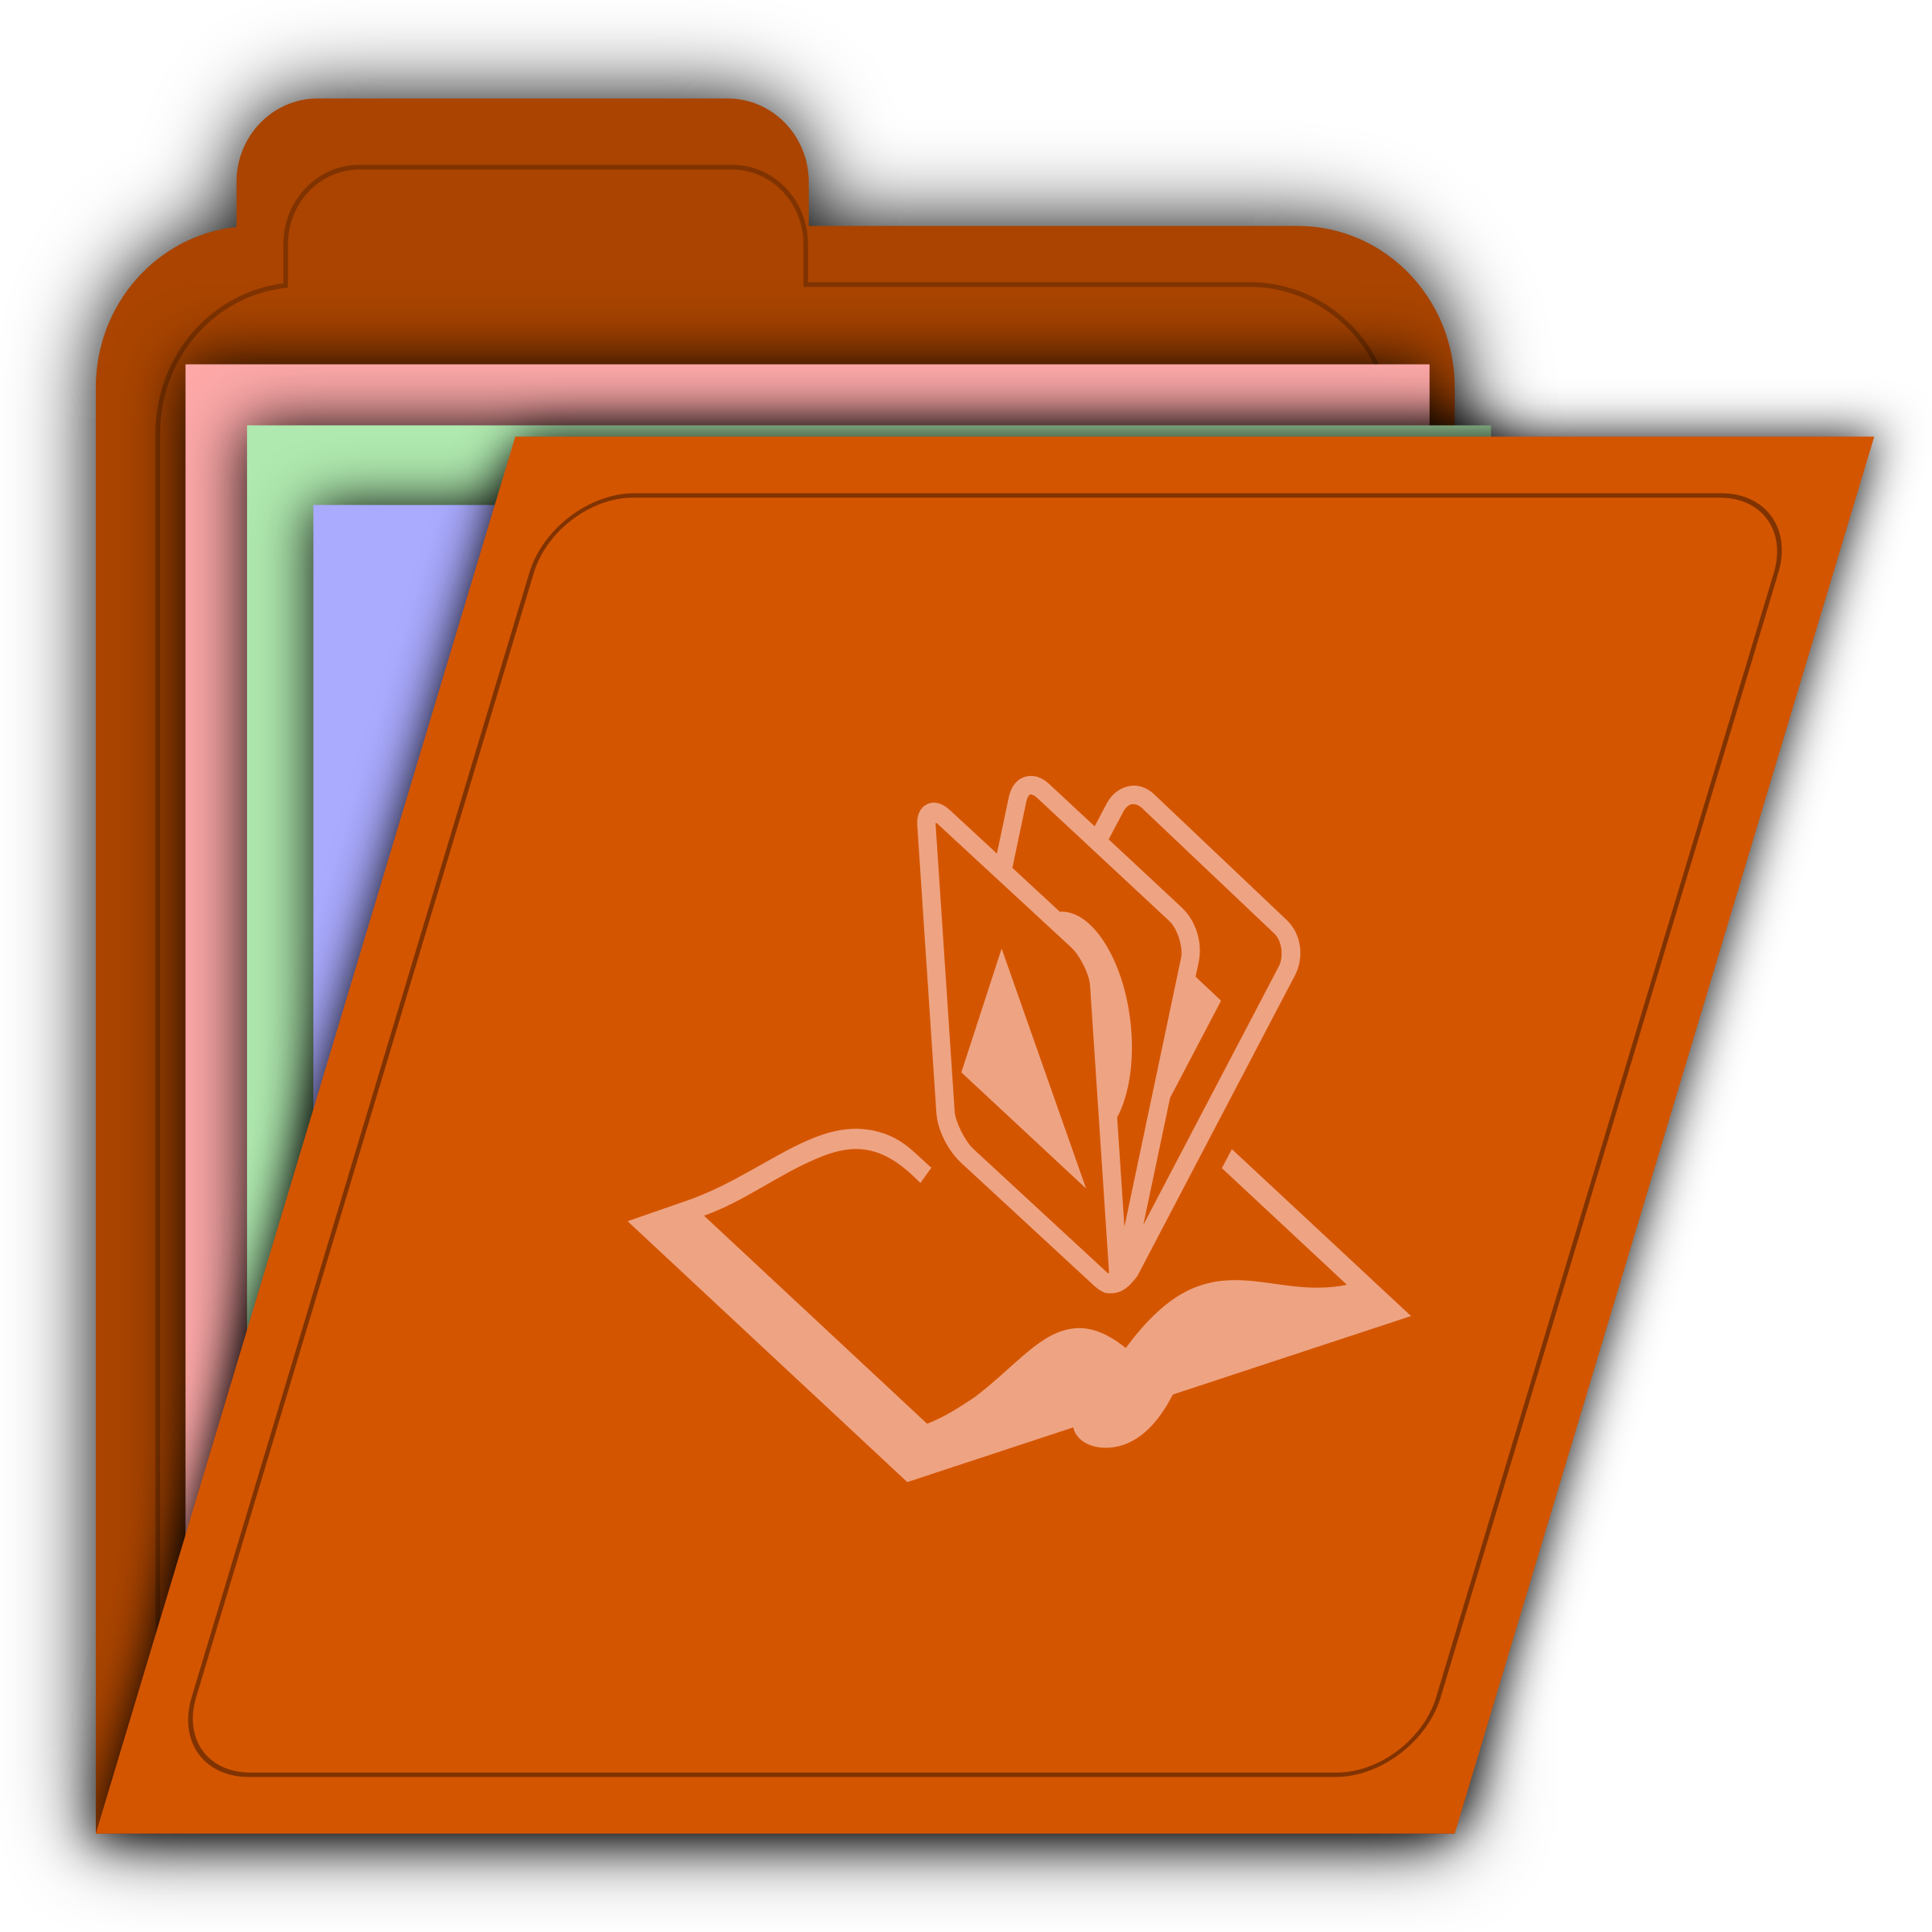 The images for -- Microsoft Office Folder Icon